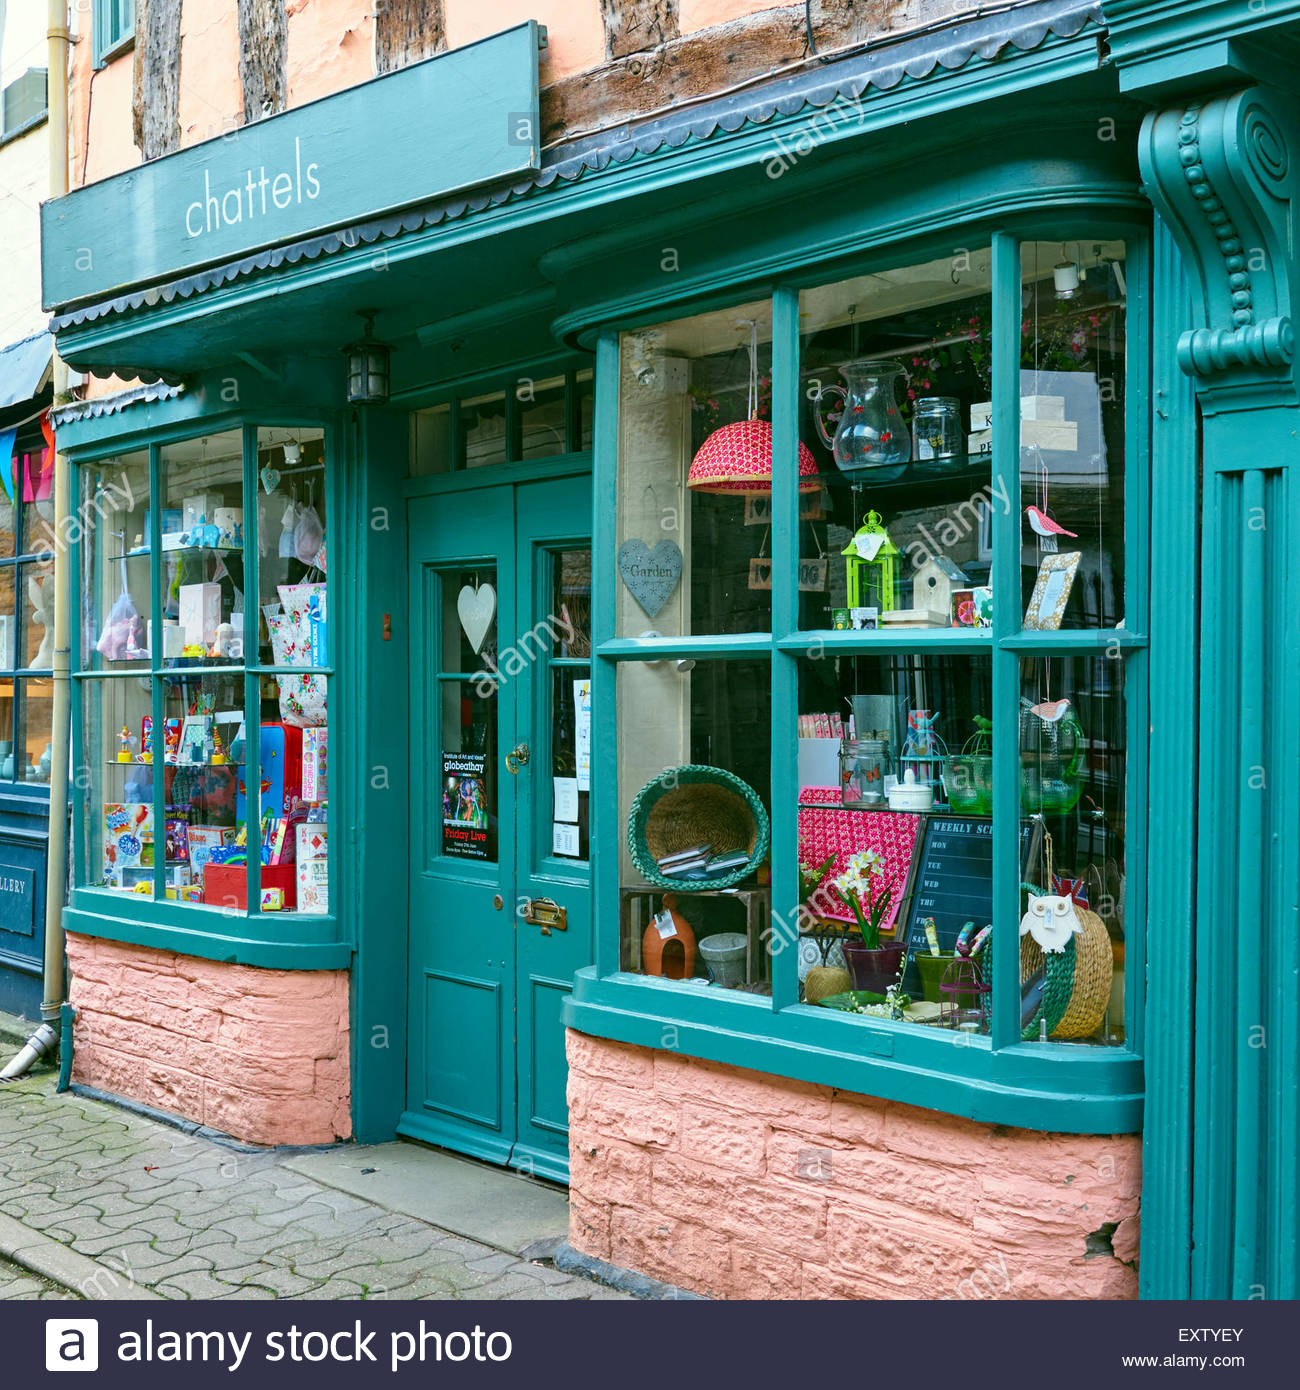 Chattels gift shop in market street in hay on wye - Stock Image